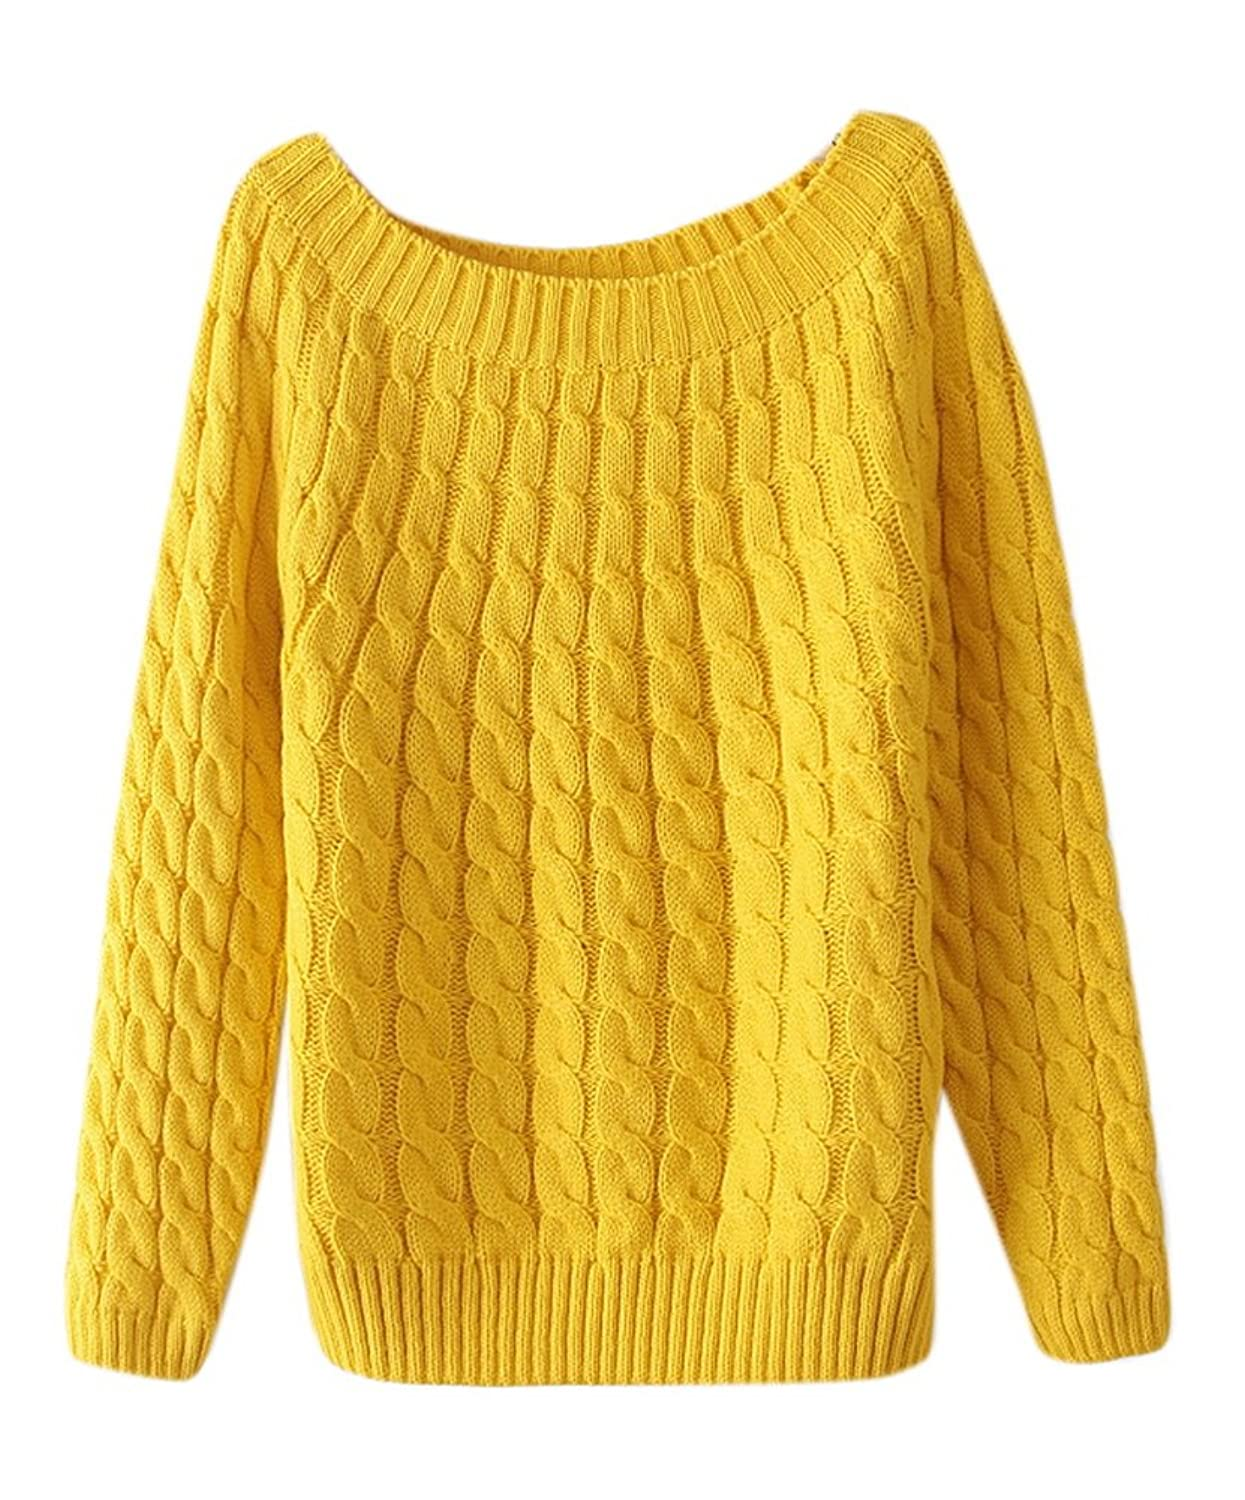 Lingswallow Women Classic Cable Knitted Loose Crew Neck Pullover Sweater